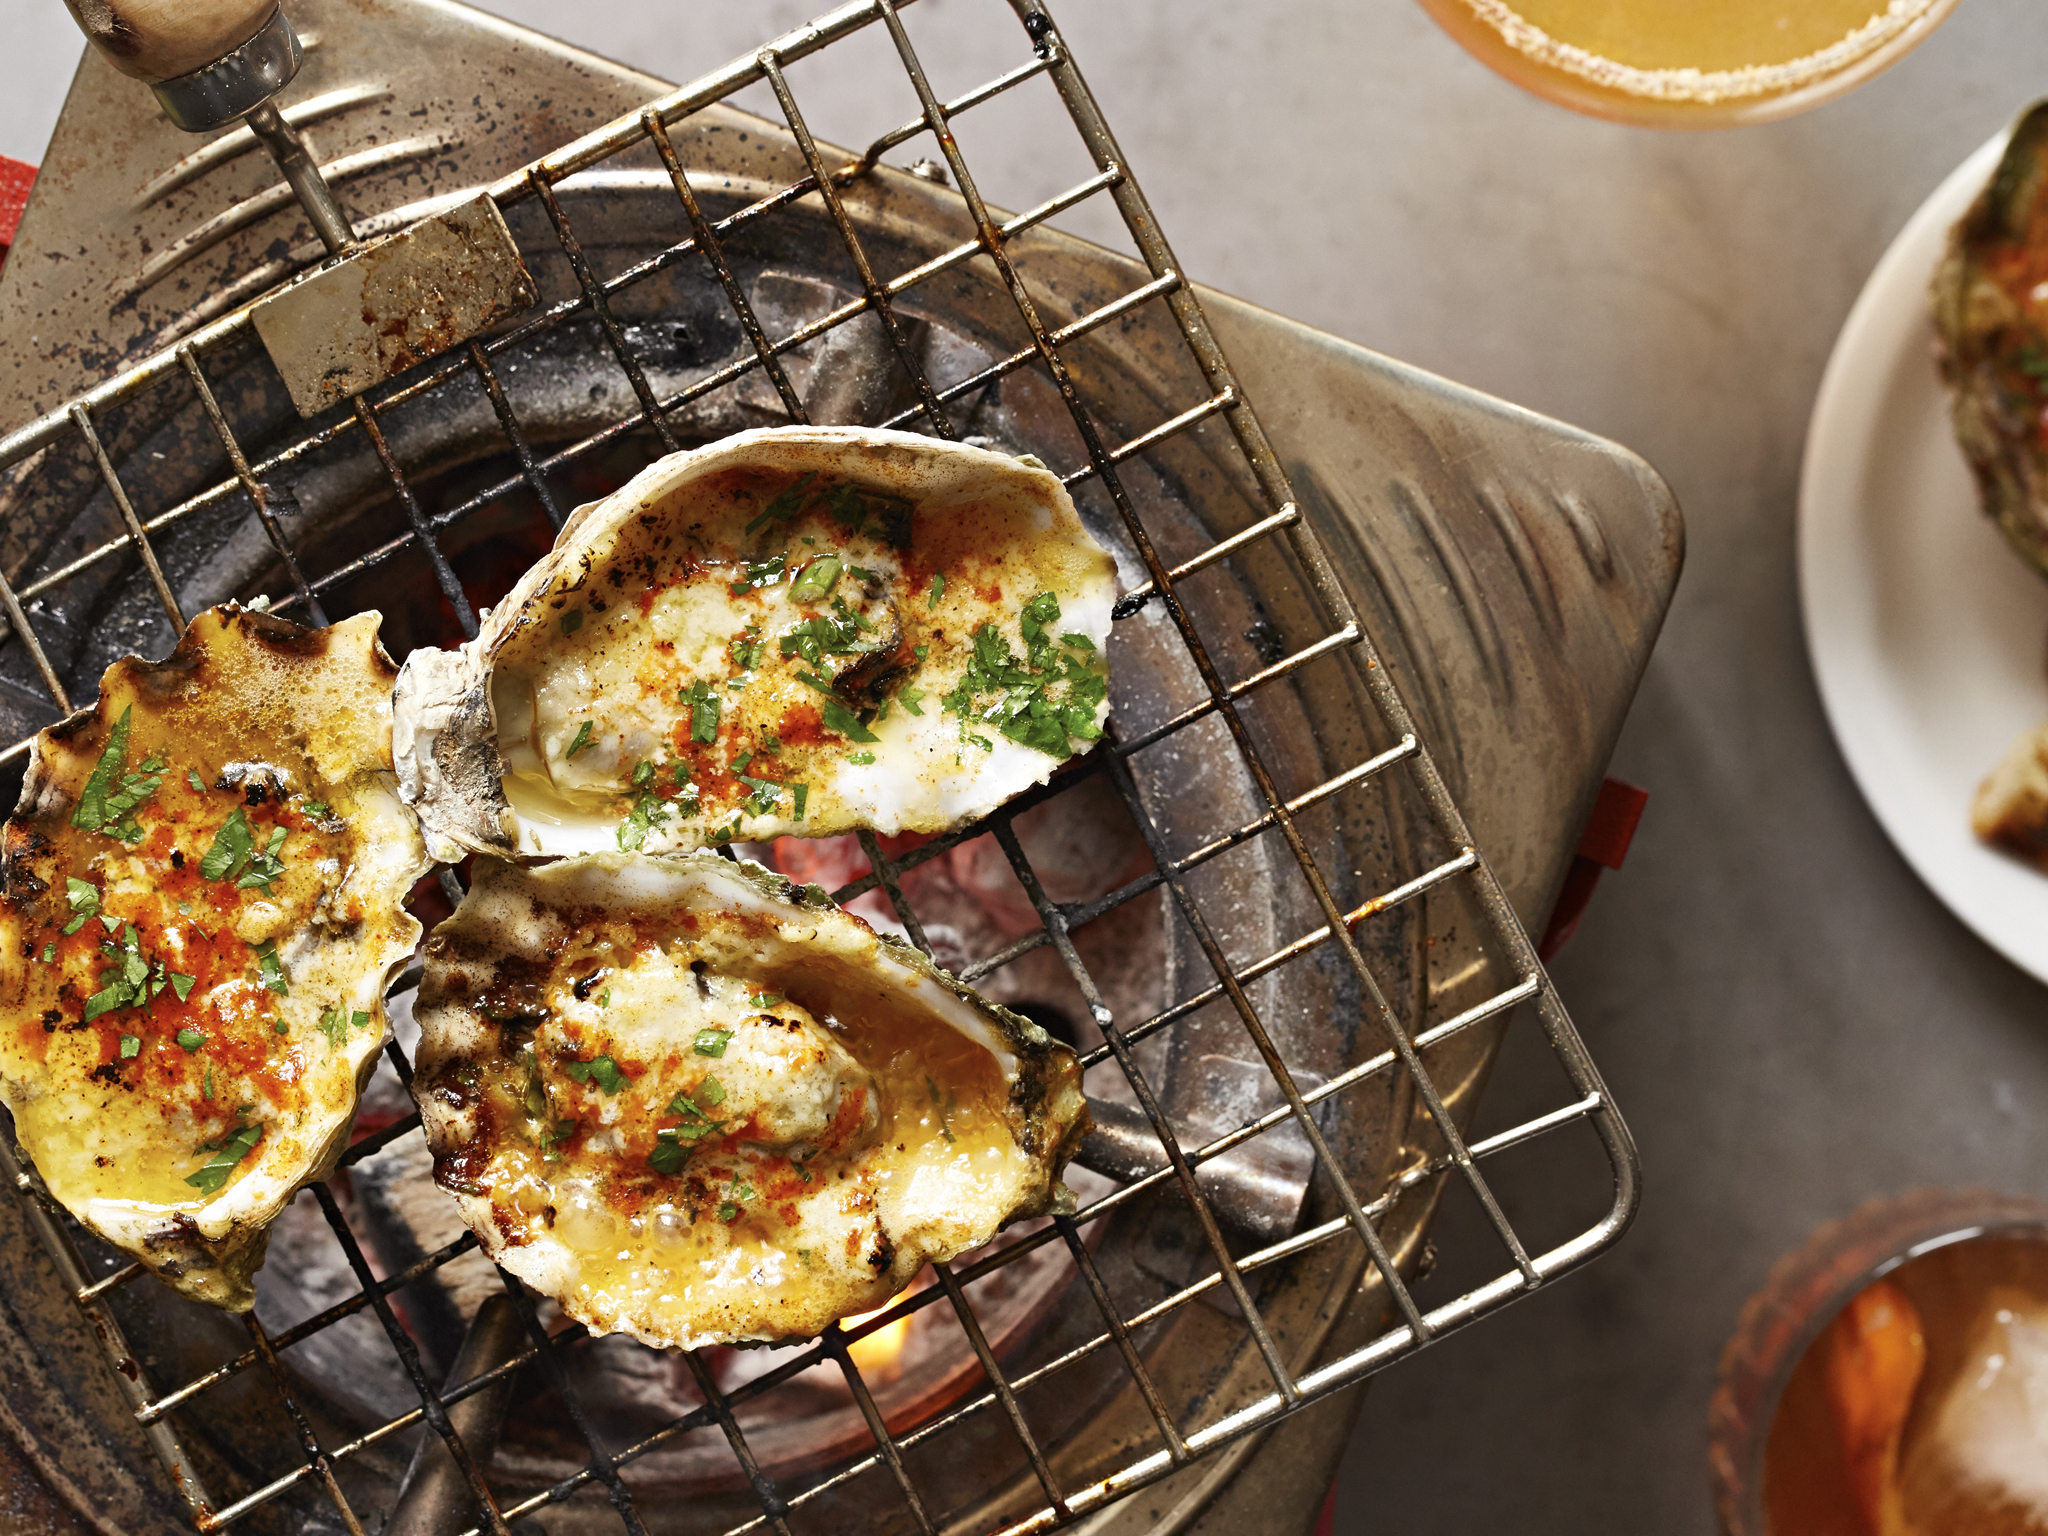 New Orleans style chargrilled oysters at Decatur at Pamela